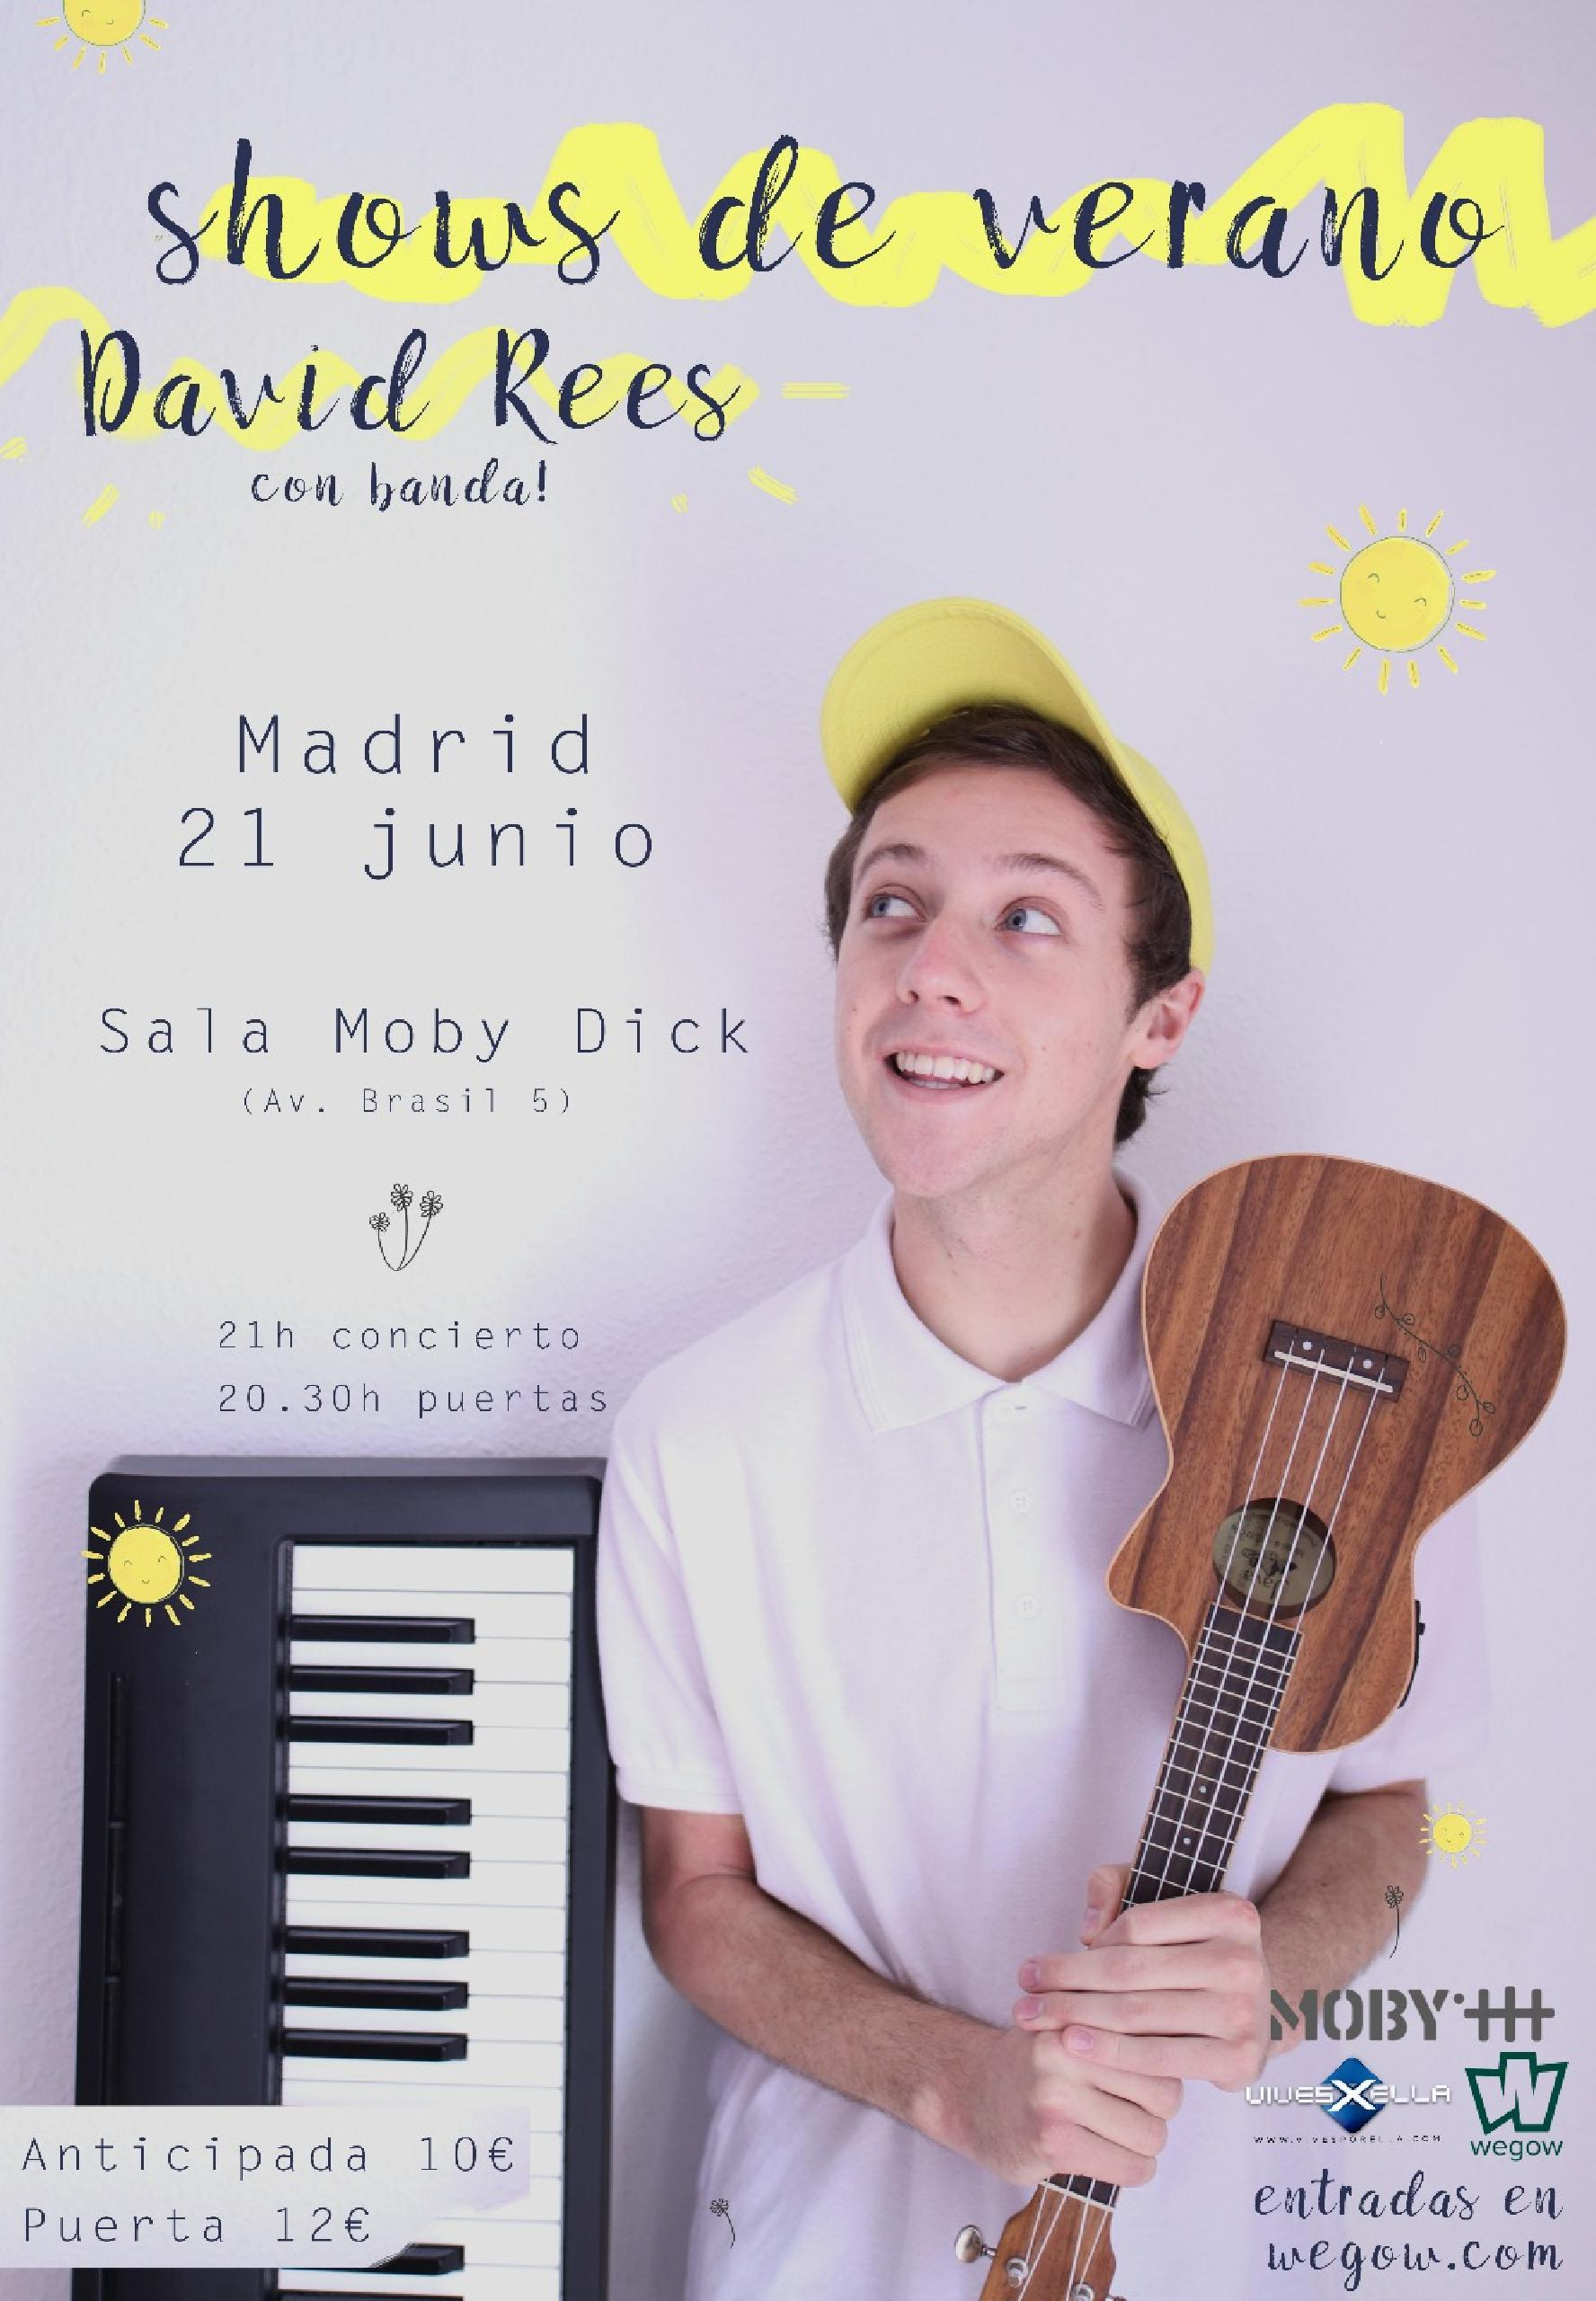 DAVID REES WEGOW MADRID